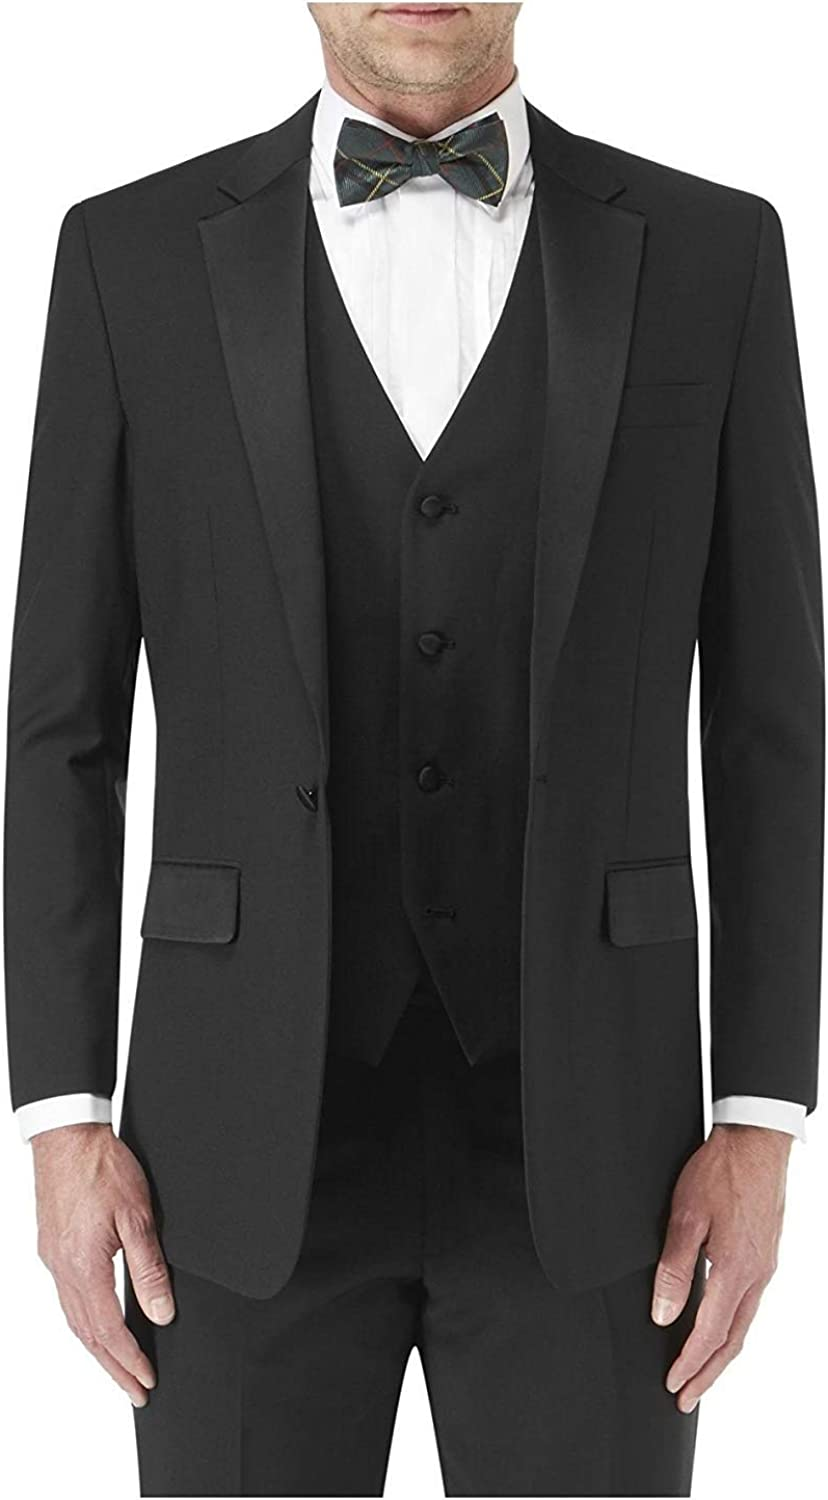 S//R//L Skopes Wool Blend Latimer Dinner Suit Jacket in Black in Size 34 to 62